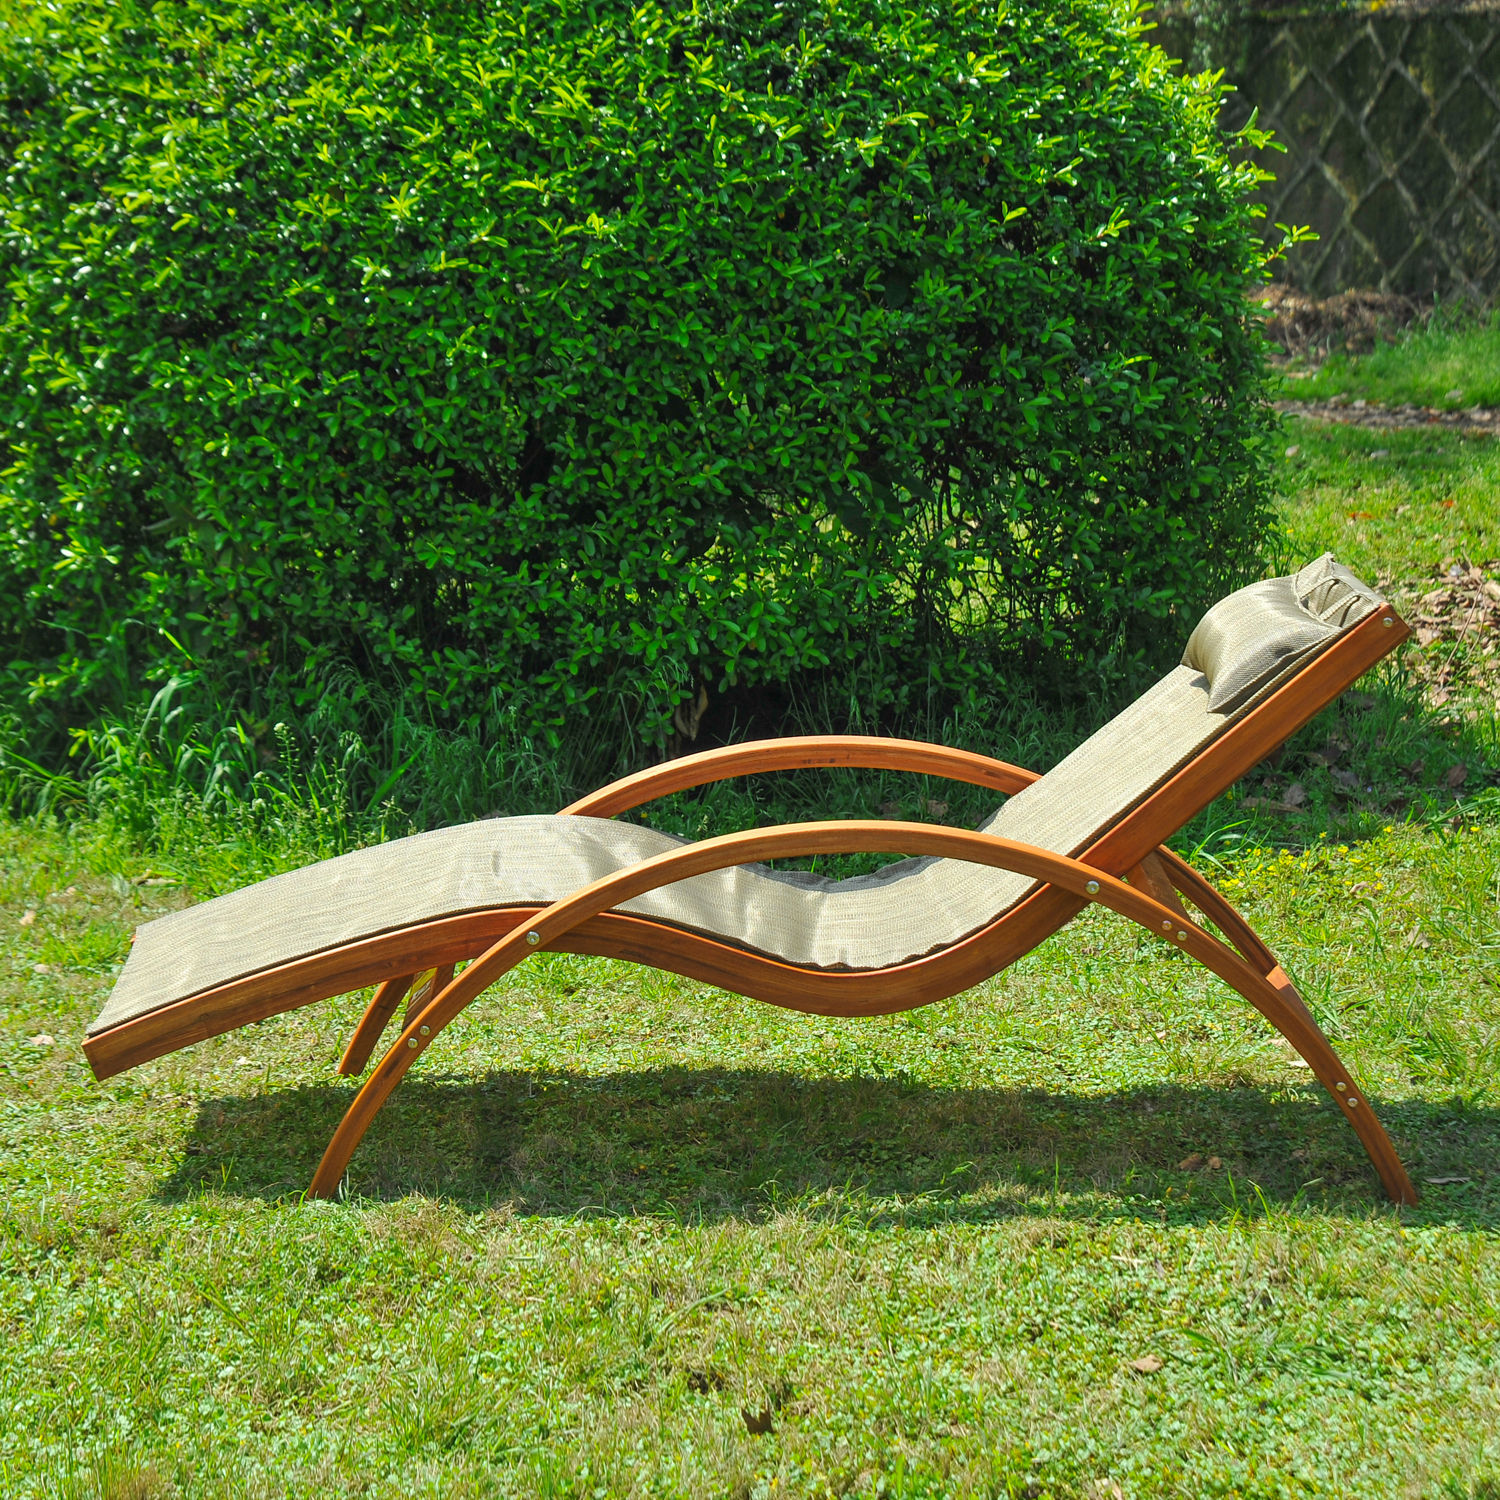 Outdoor Chaise Lounge Wooden Patio Chaise Lounge Chair Outdoor Furniture Pool